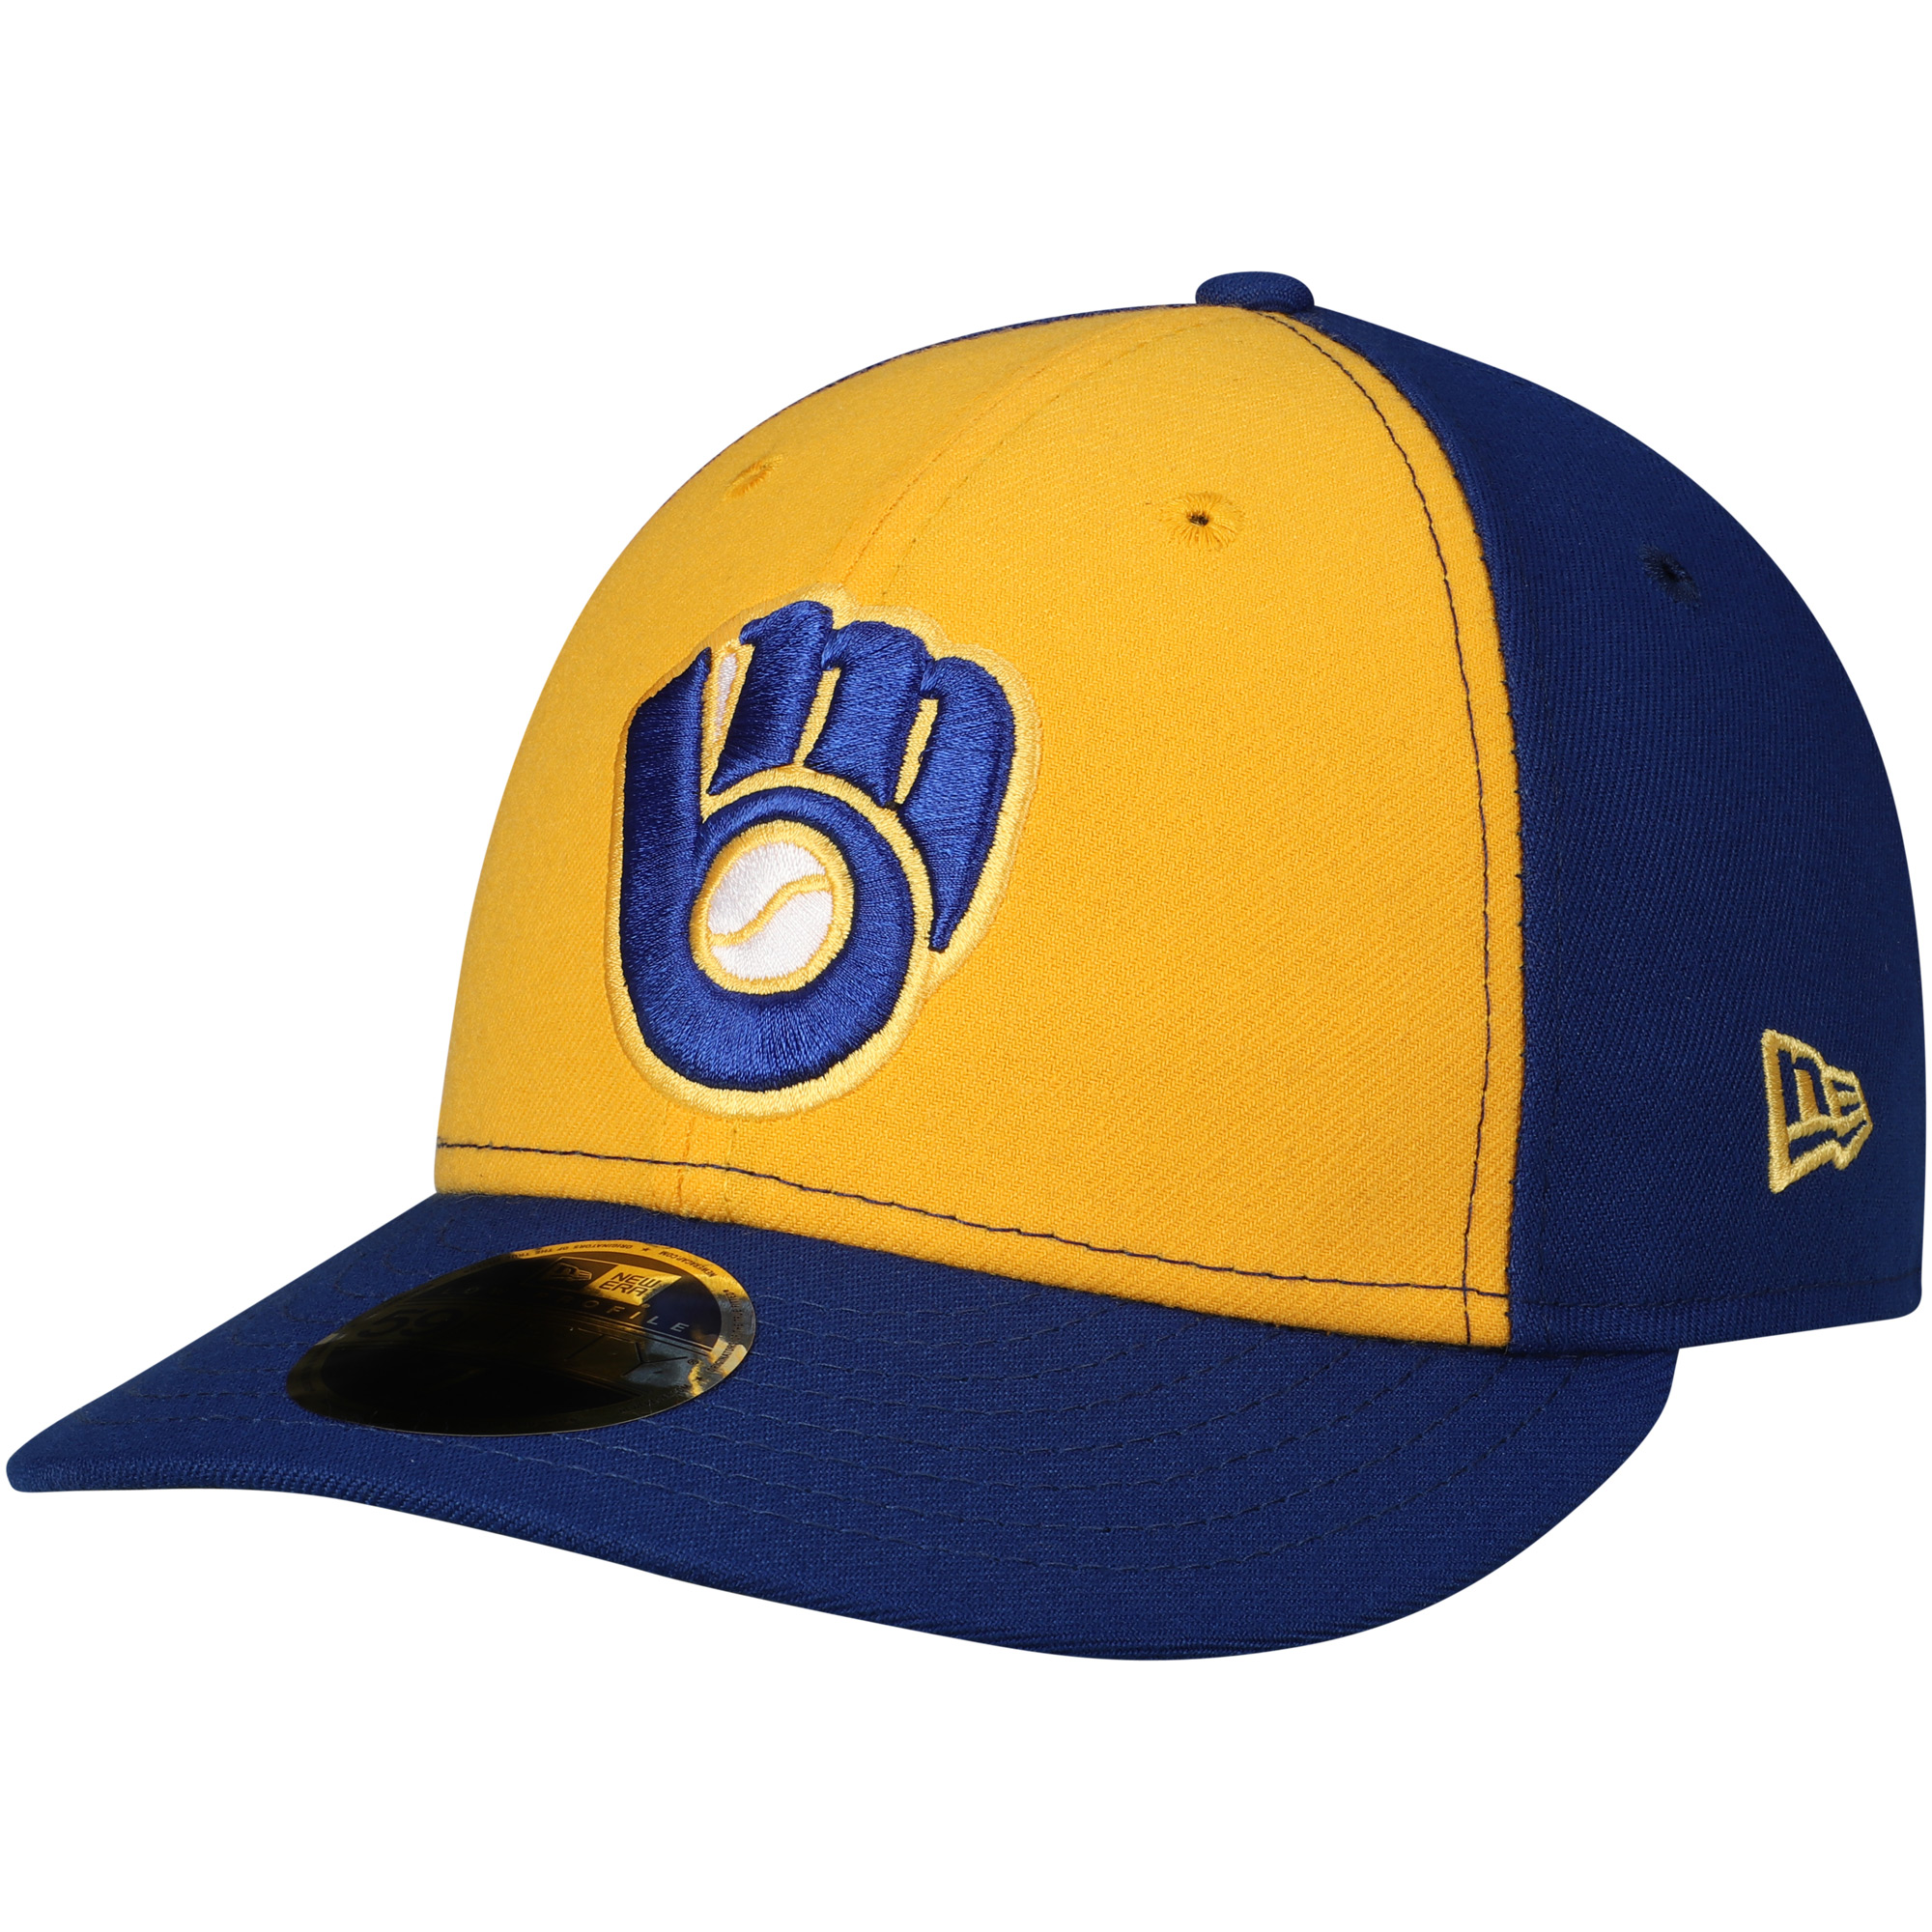 Milwaukee Brewers New Era Turn Back the Clock Low Profile 59FIFTY Fitted Hat - Gold/Royal